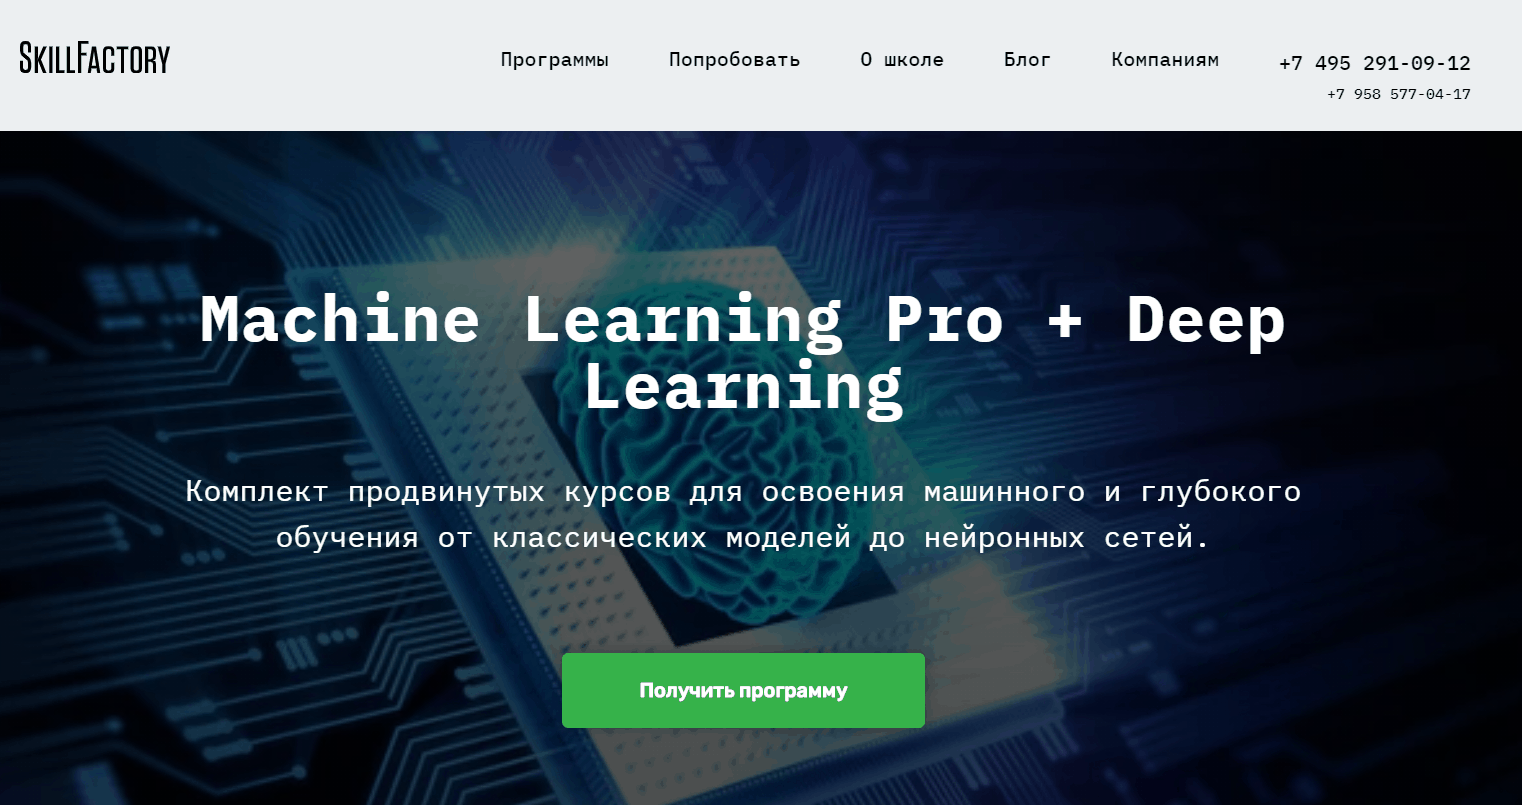 Machine Learning Pro + Deep Learning